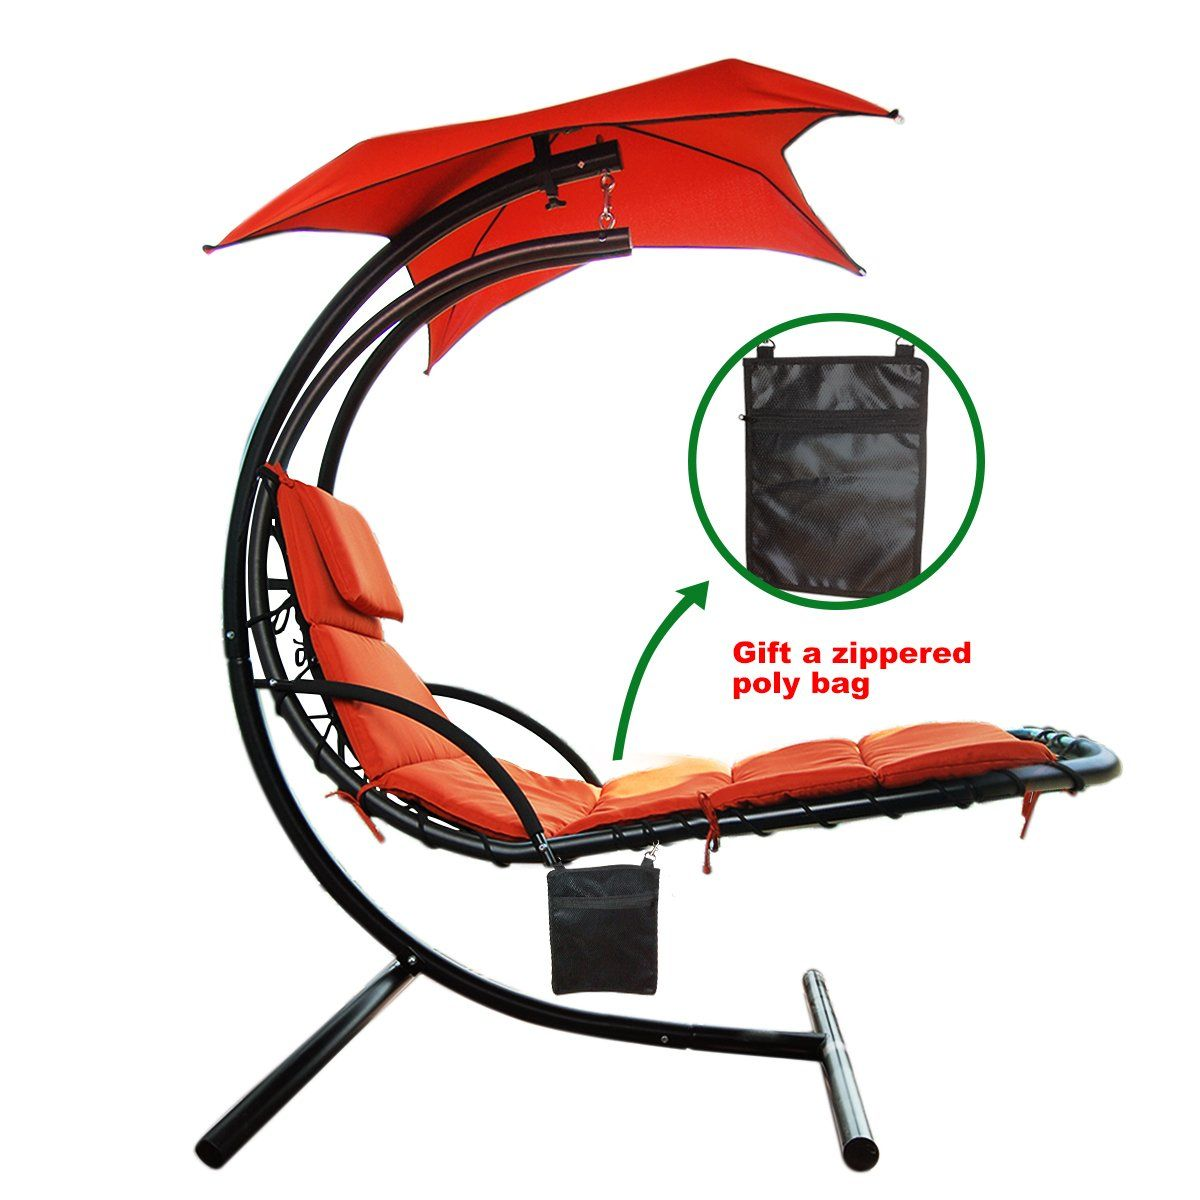 Lbs max weight capacity hanging chaise lounger chair with